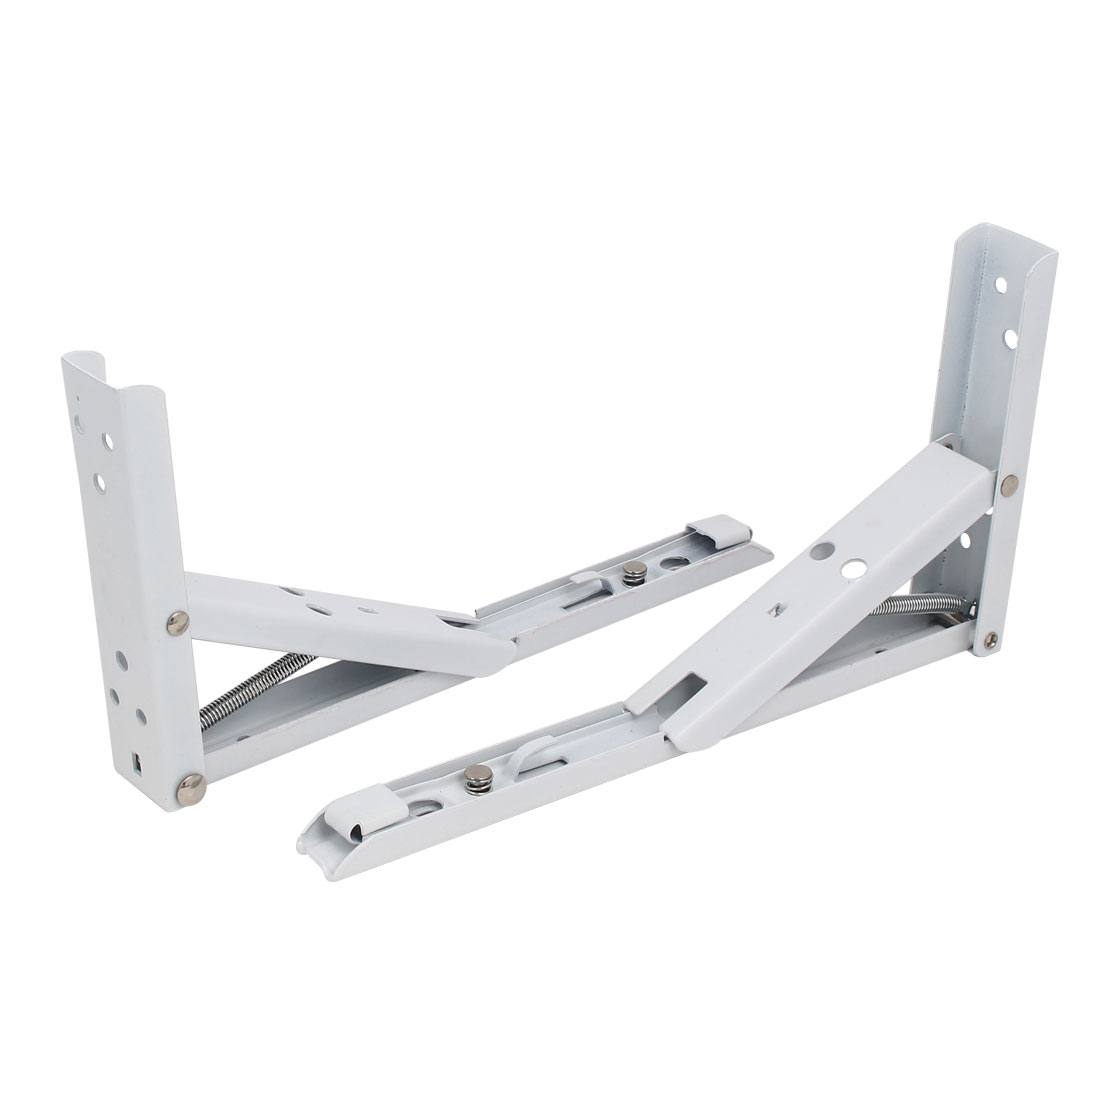 10'' Length Right Angle Spring Loaded Folding Shelf Support Bracket Brace 2pcs